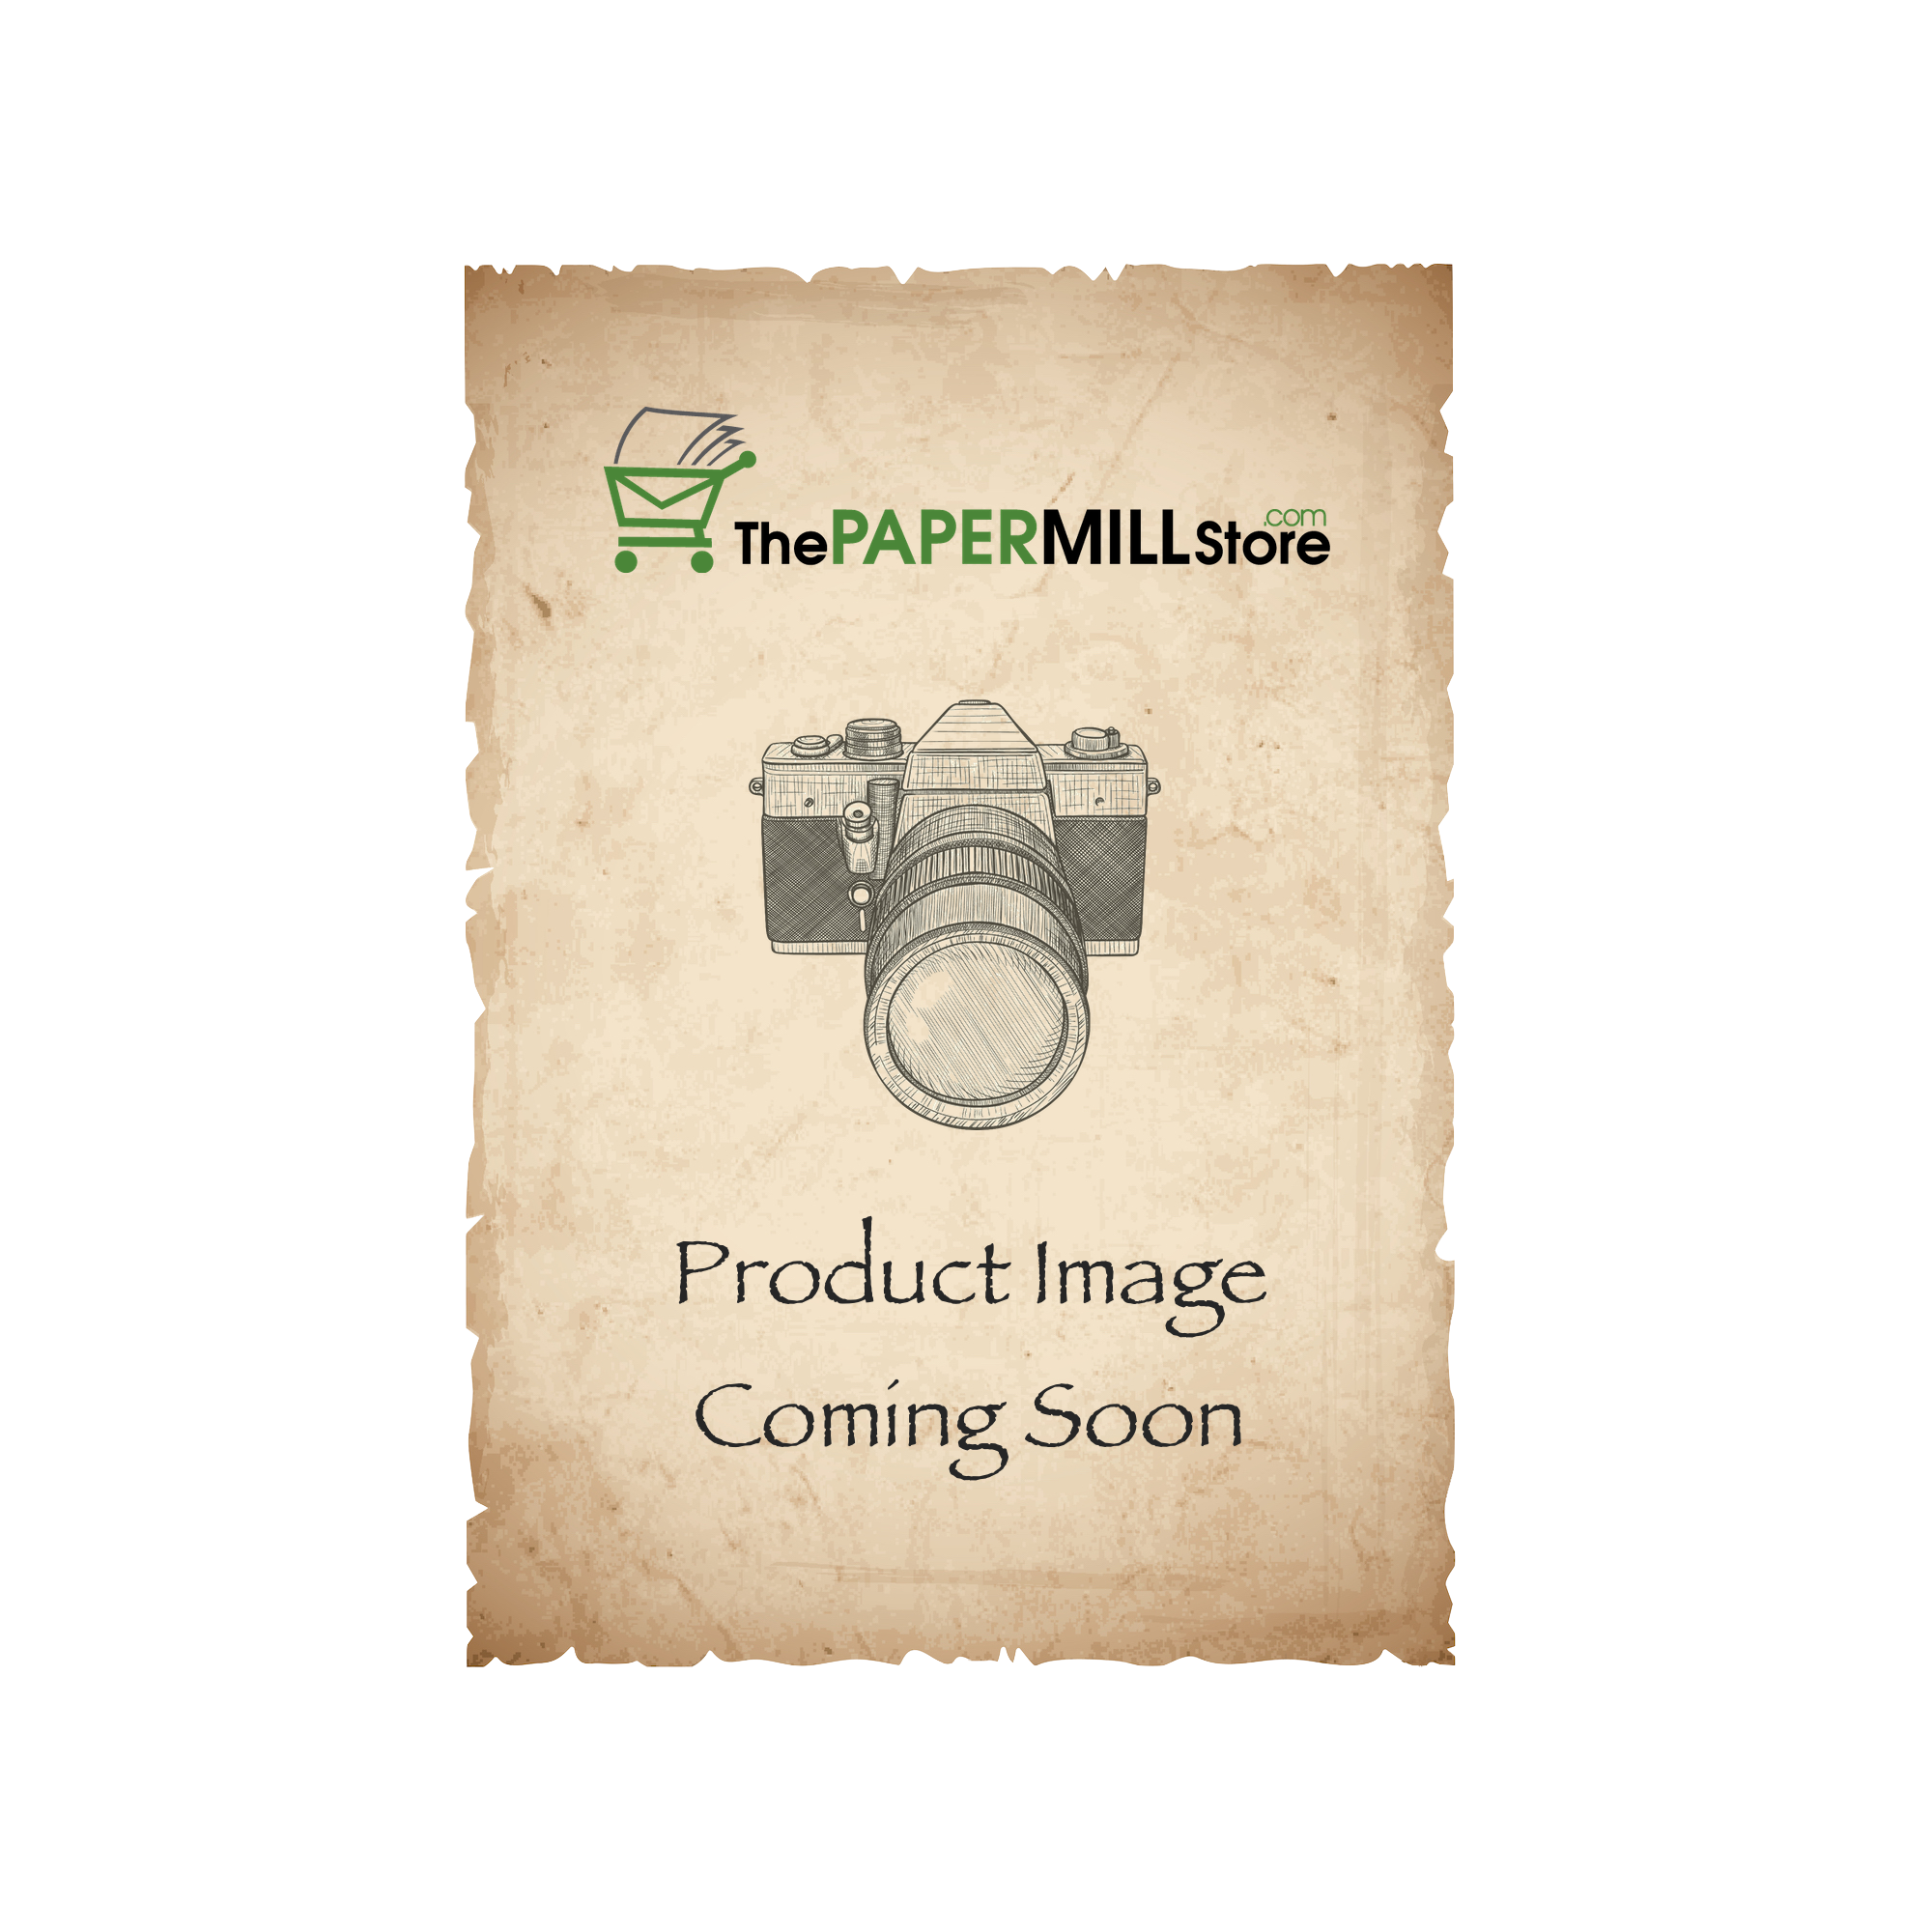 ColorMates Smooth & Silky Natural Parchment Card Stock - 8 1/2 x 11 in 80 lb Cover Smooth 25 per Package